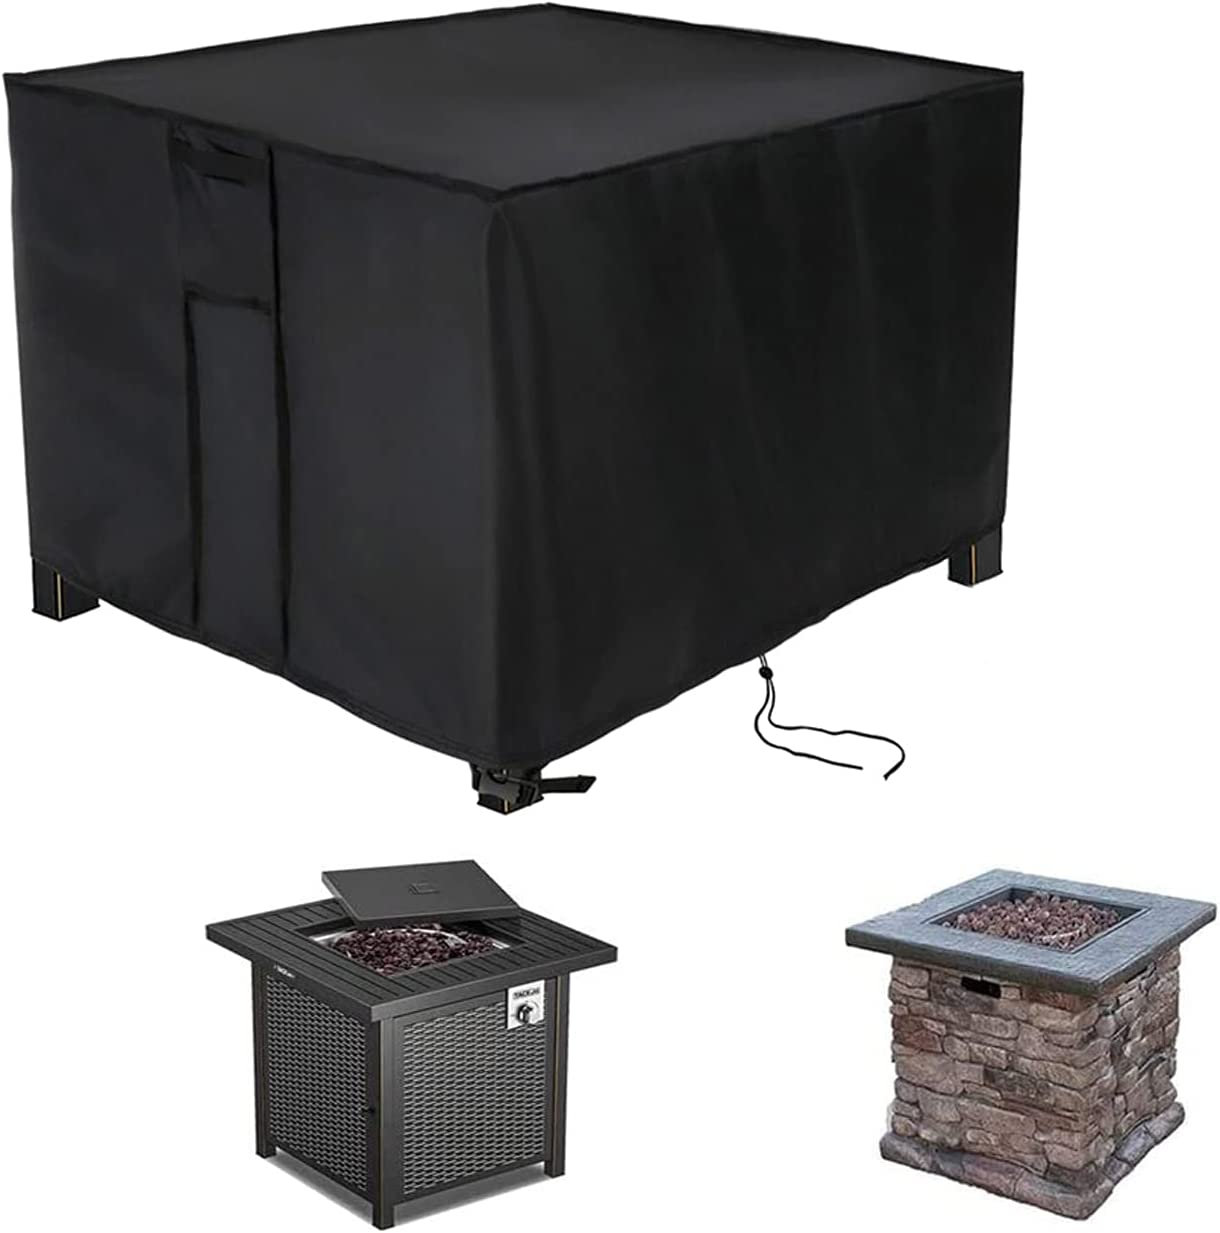 POMER Fire Pit Cover Special Ranking TOP12 sale item Square Anti-UV Ou - 28x28x25inch Waterproof